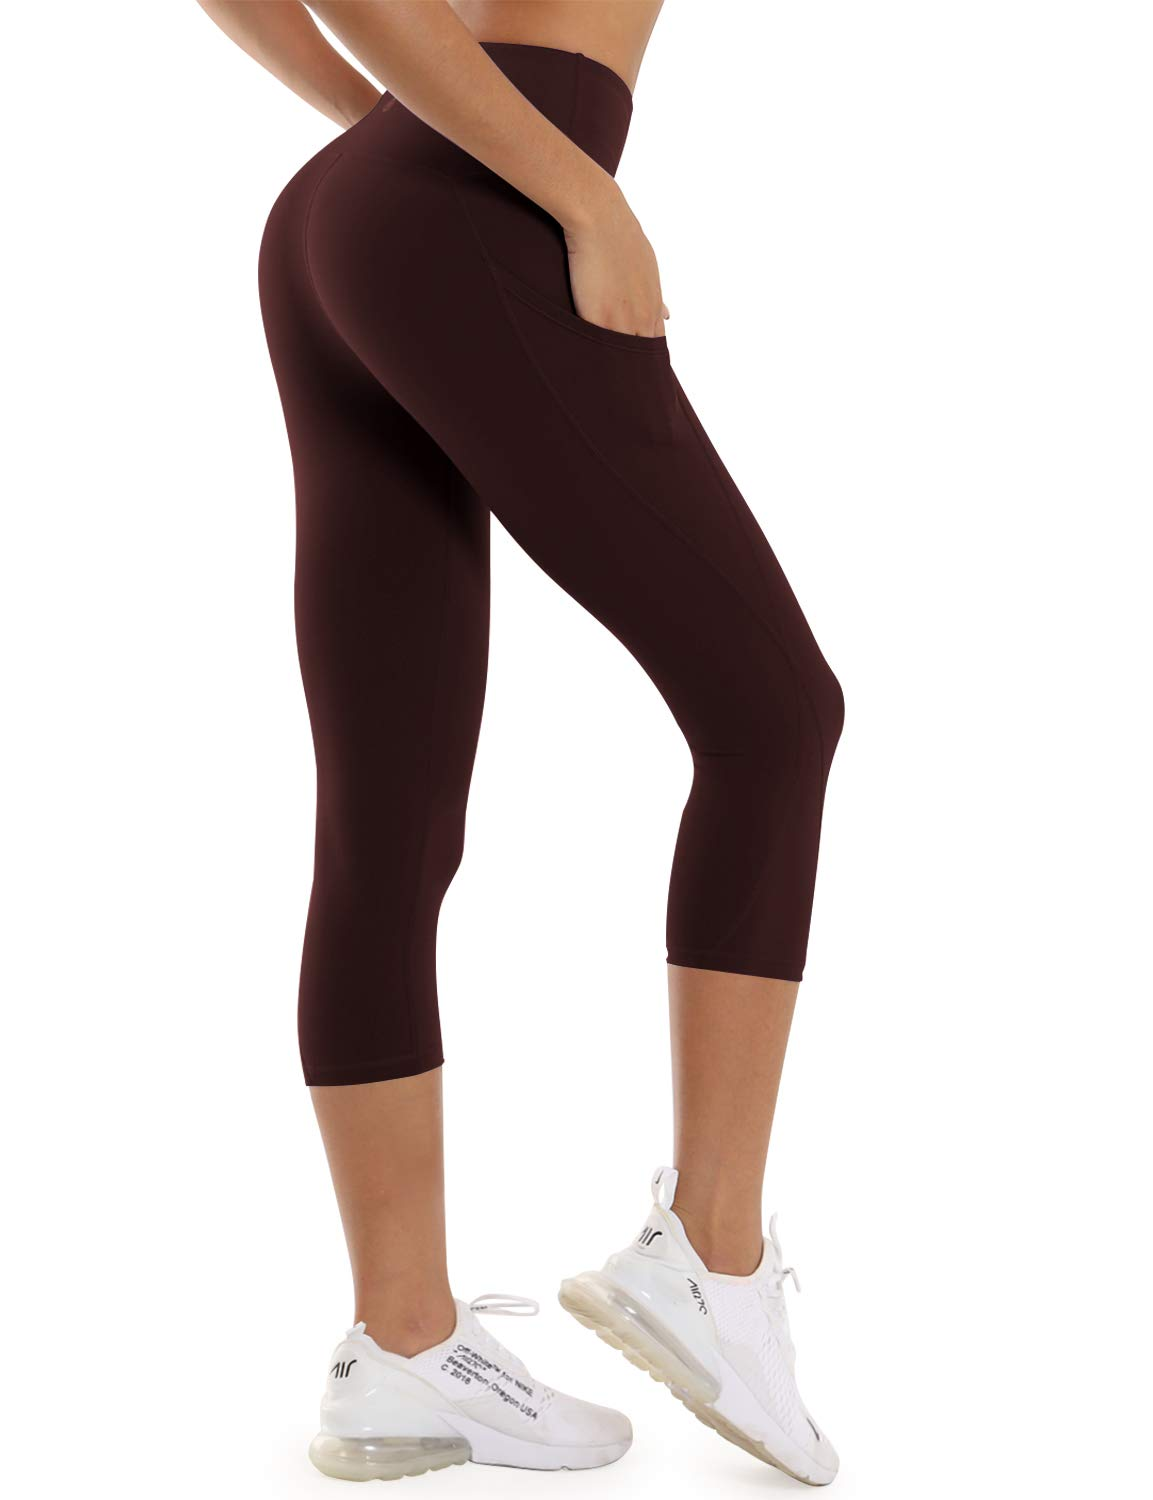 BUBBLELIME High Compression Yoga Capris Out Pocket Running Capris High Waist Active Tights UPF30+